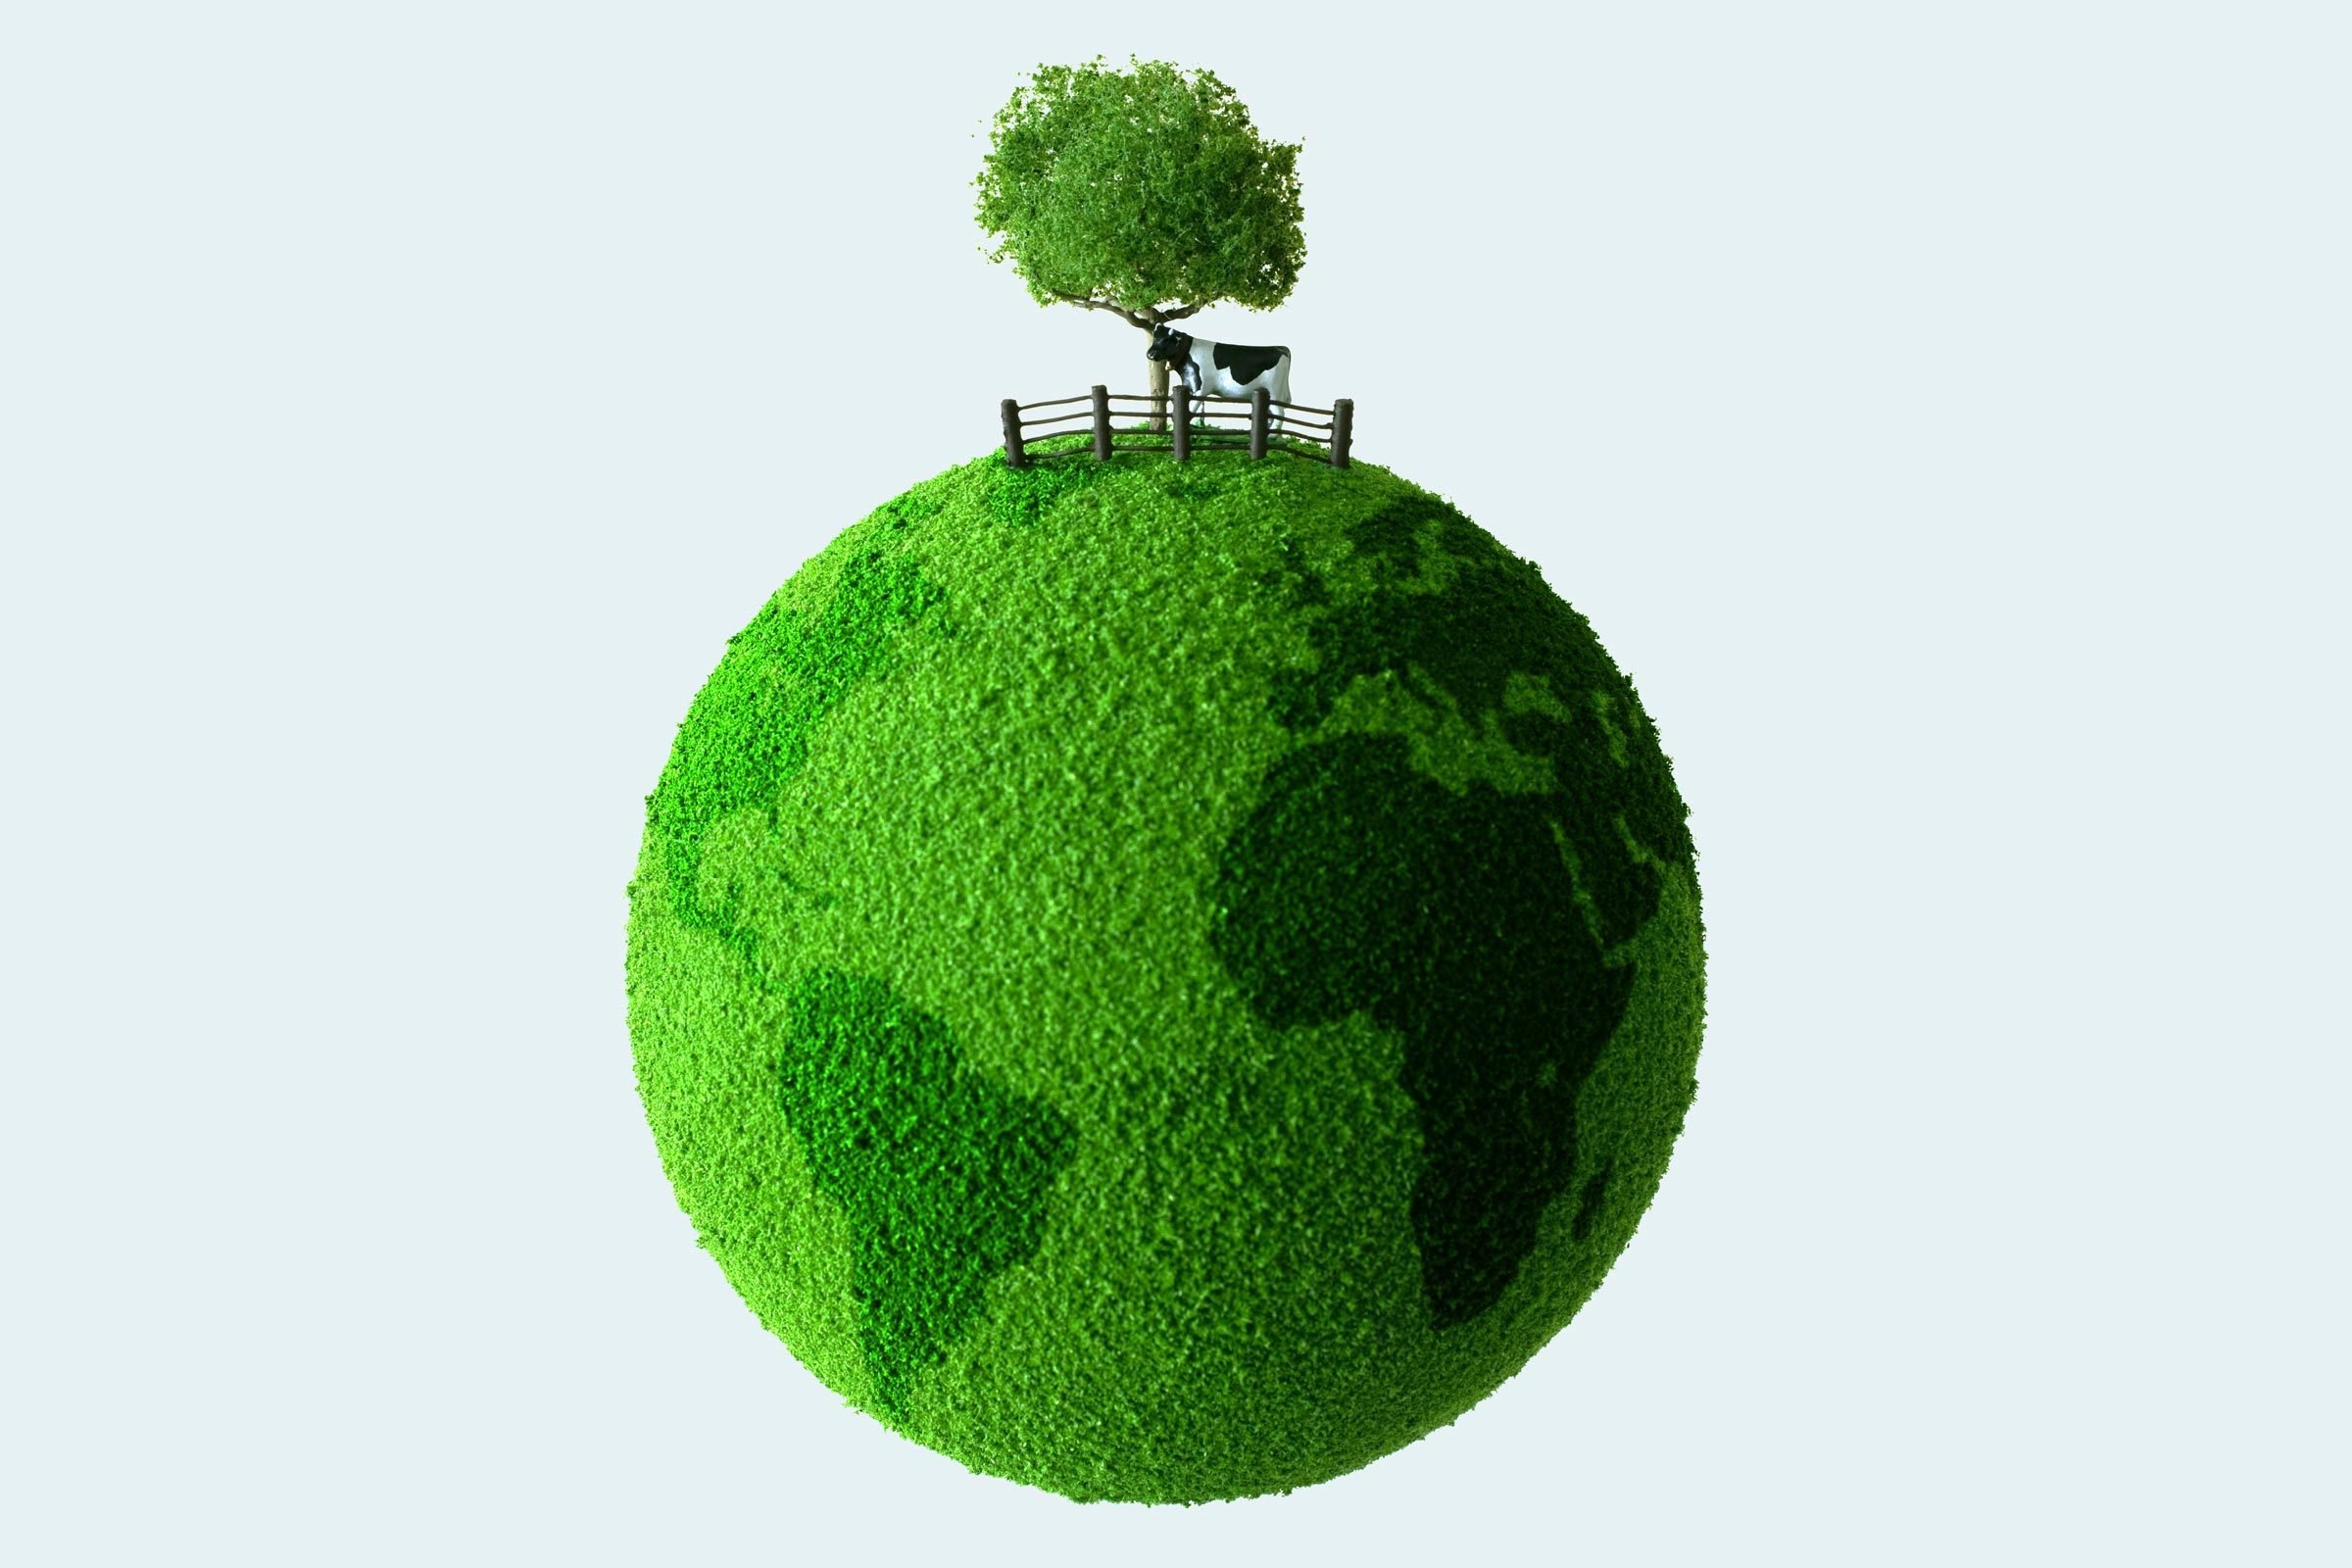 green planet with toy cow and tree on top